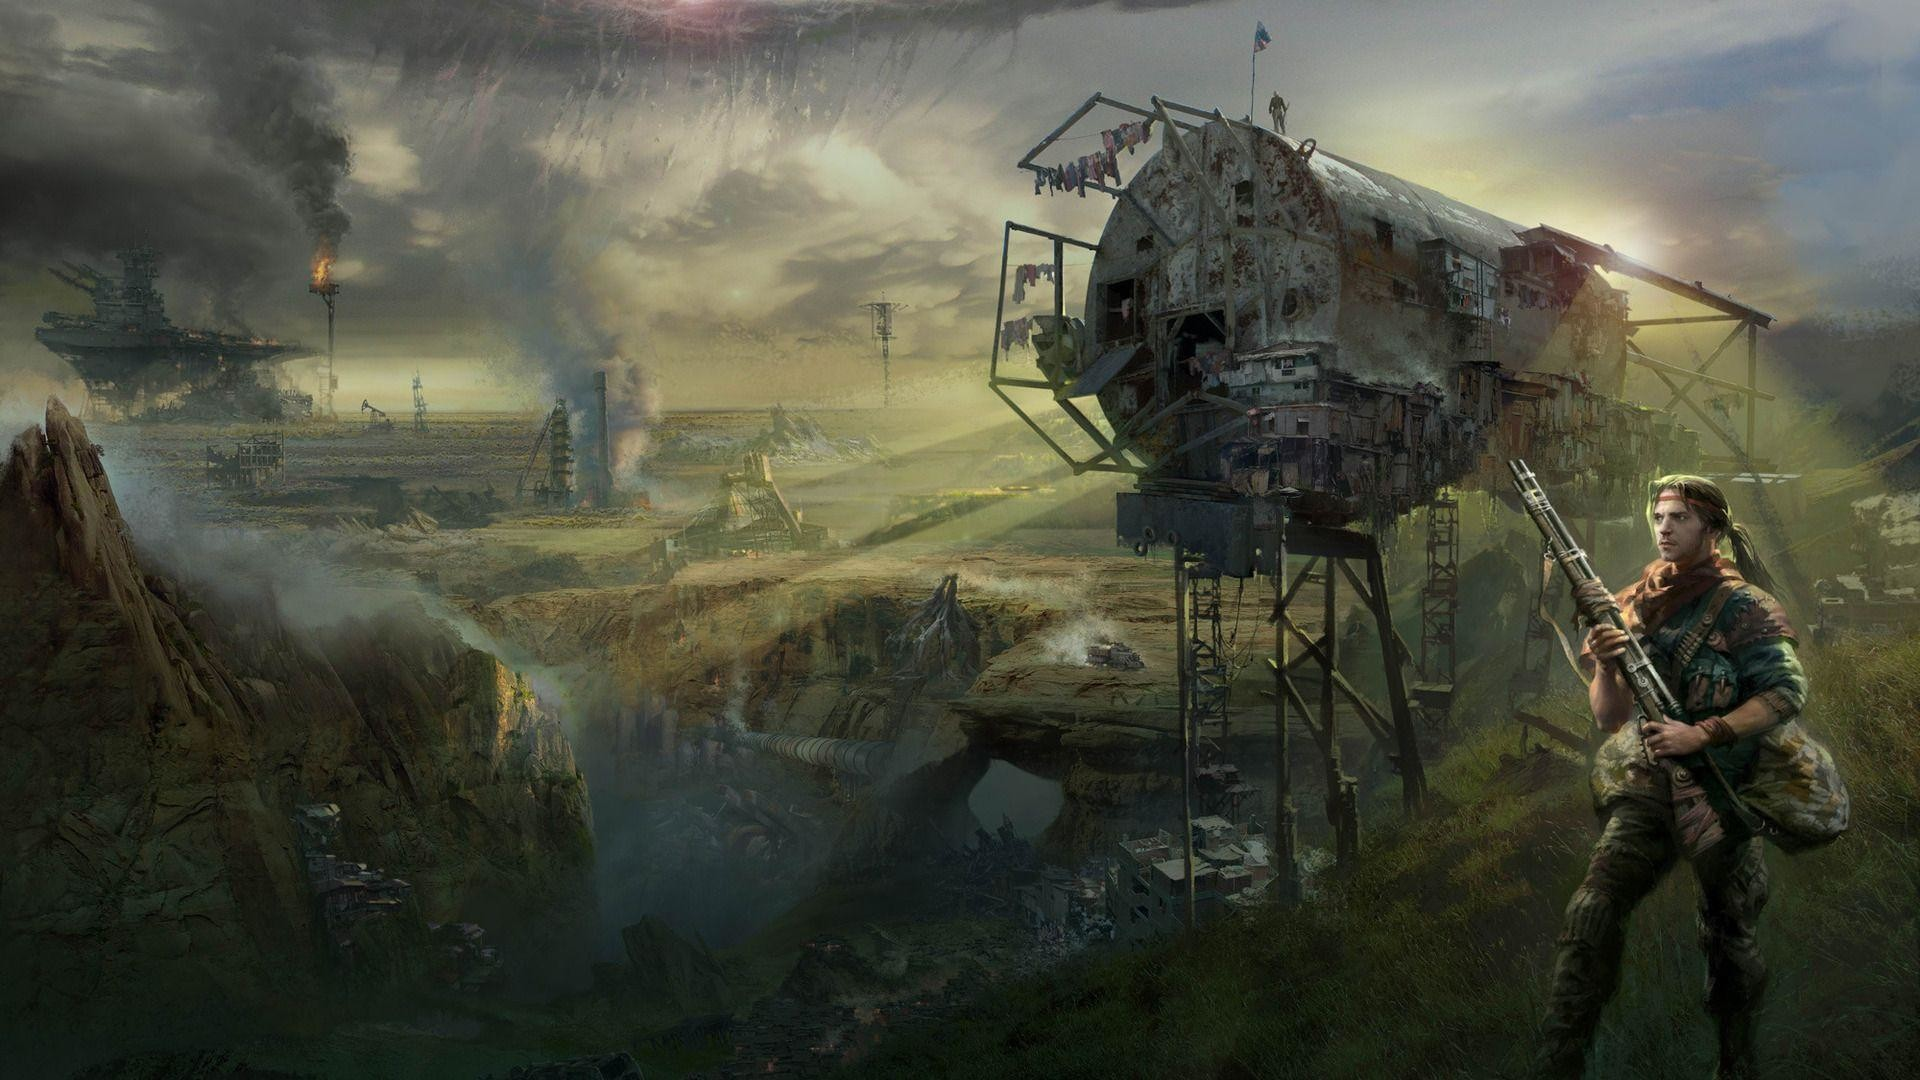 … apocalyptic wallpapers wallpaper cave; 277 post apocalyptic hd  wallpapers …